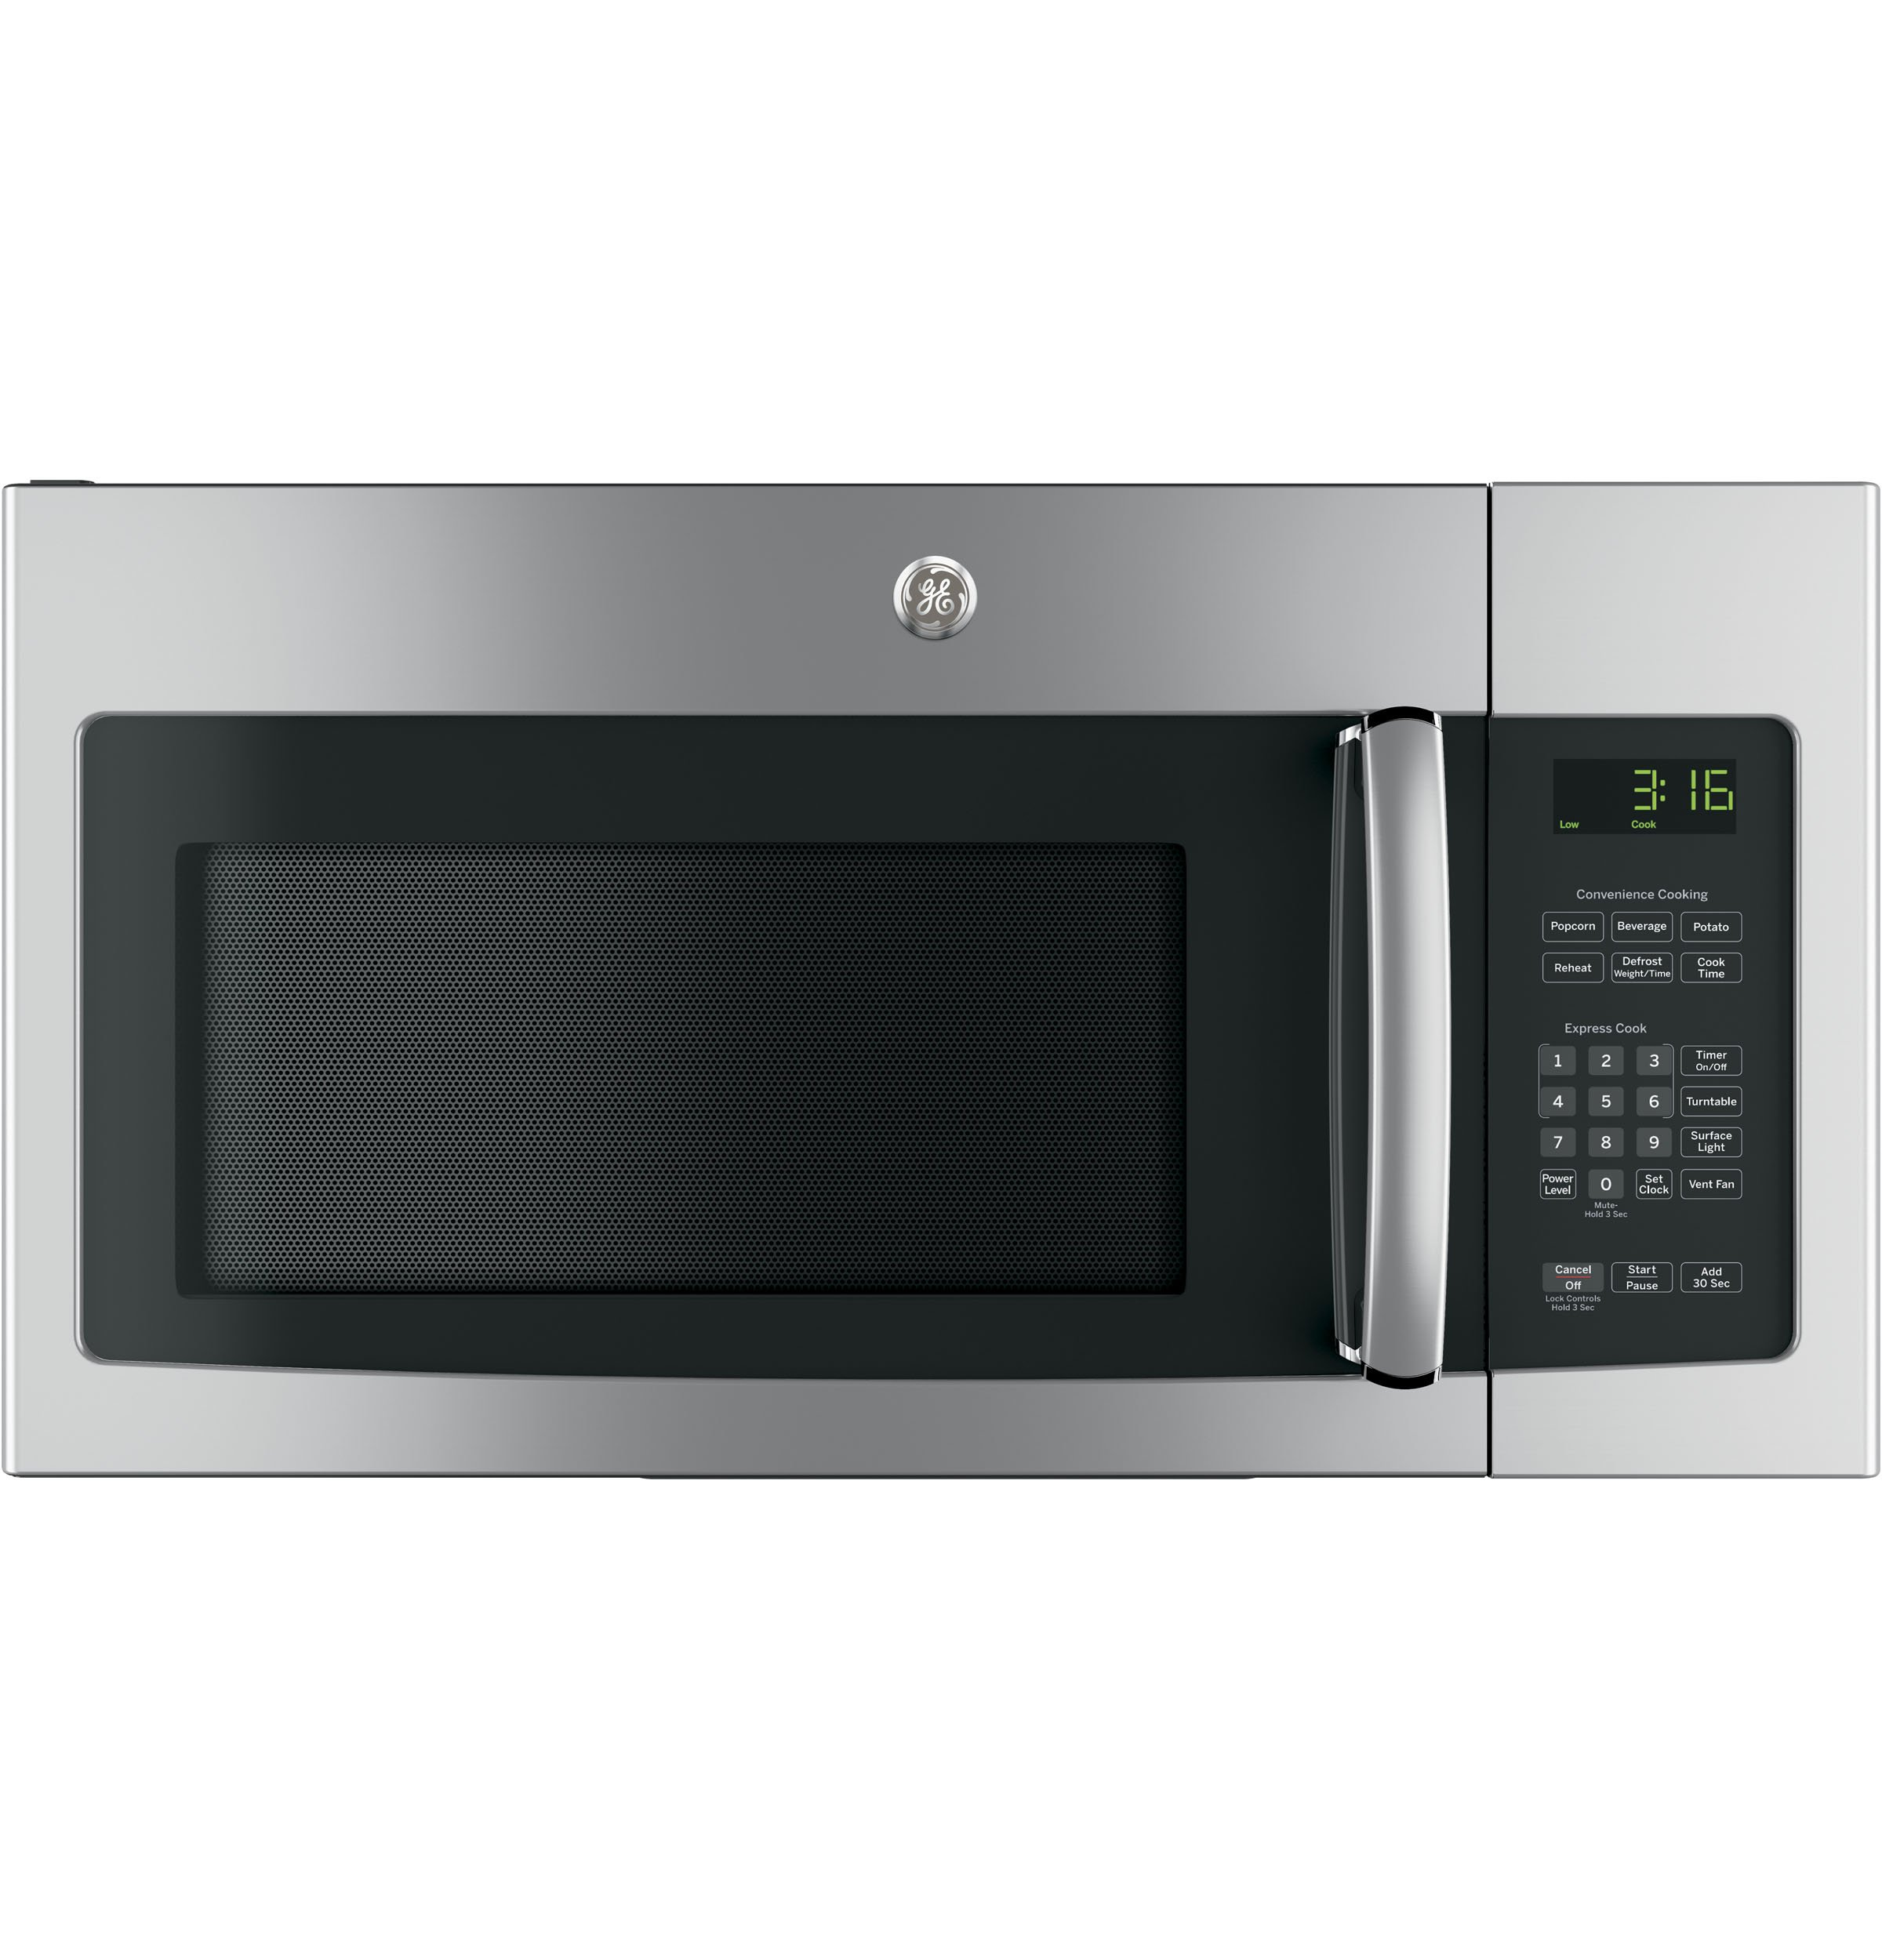 GE JNM3163RJSS 30'' Over-the-Range Microwave with 1.6 cu. ft. Capacity, in Stainless Steel by GE